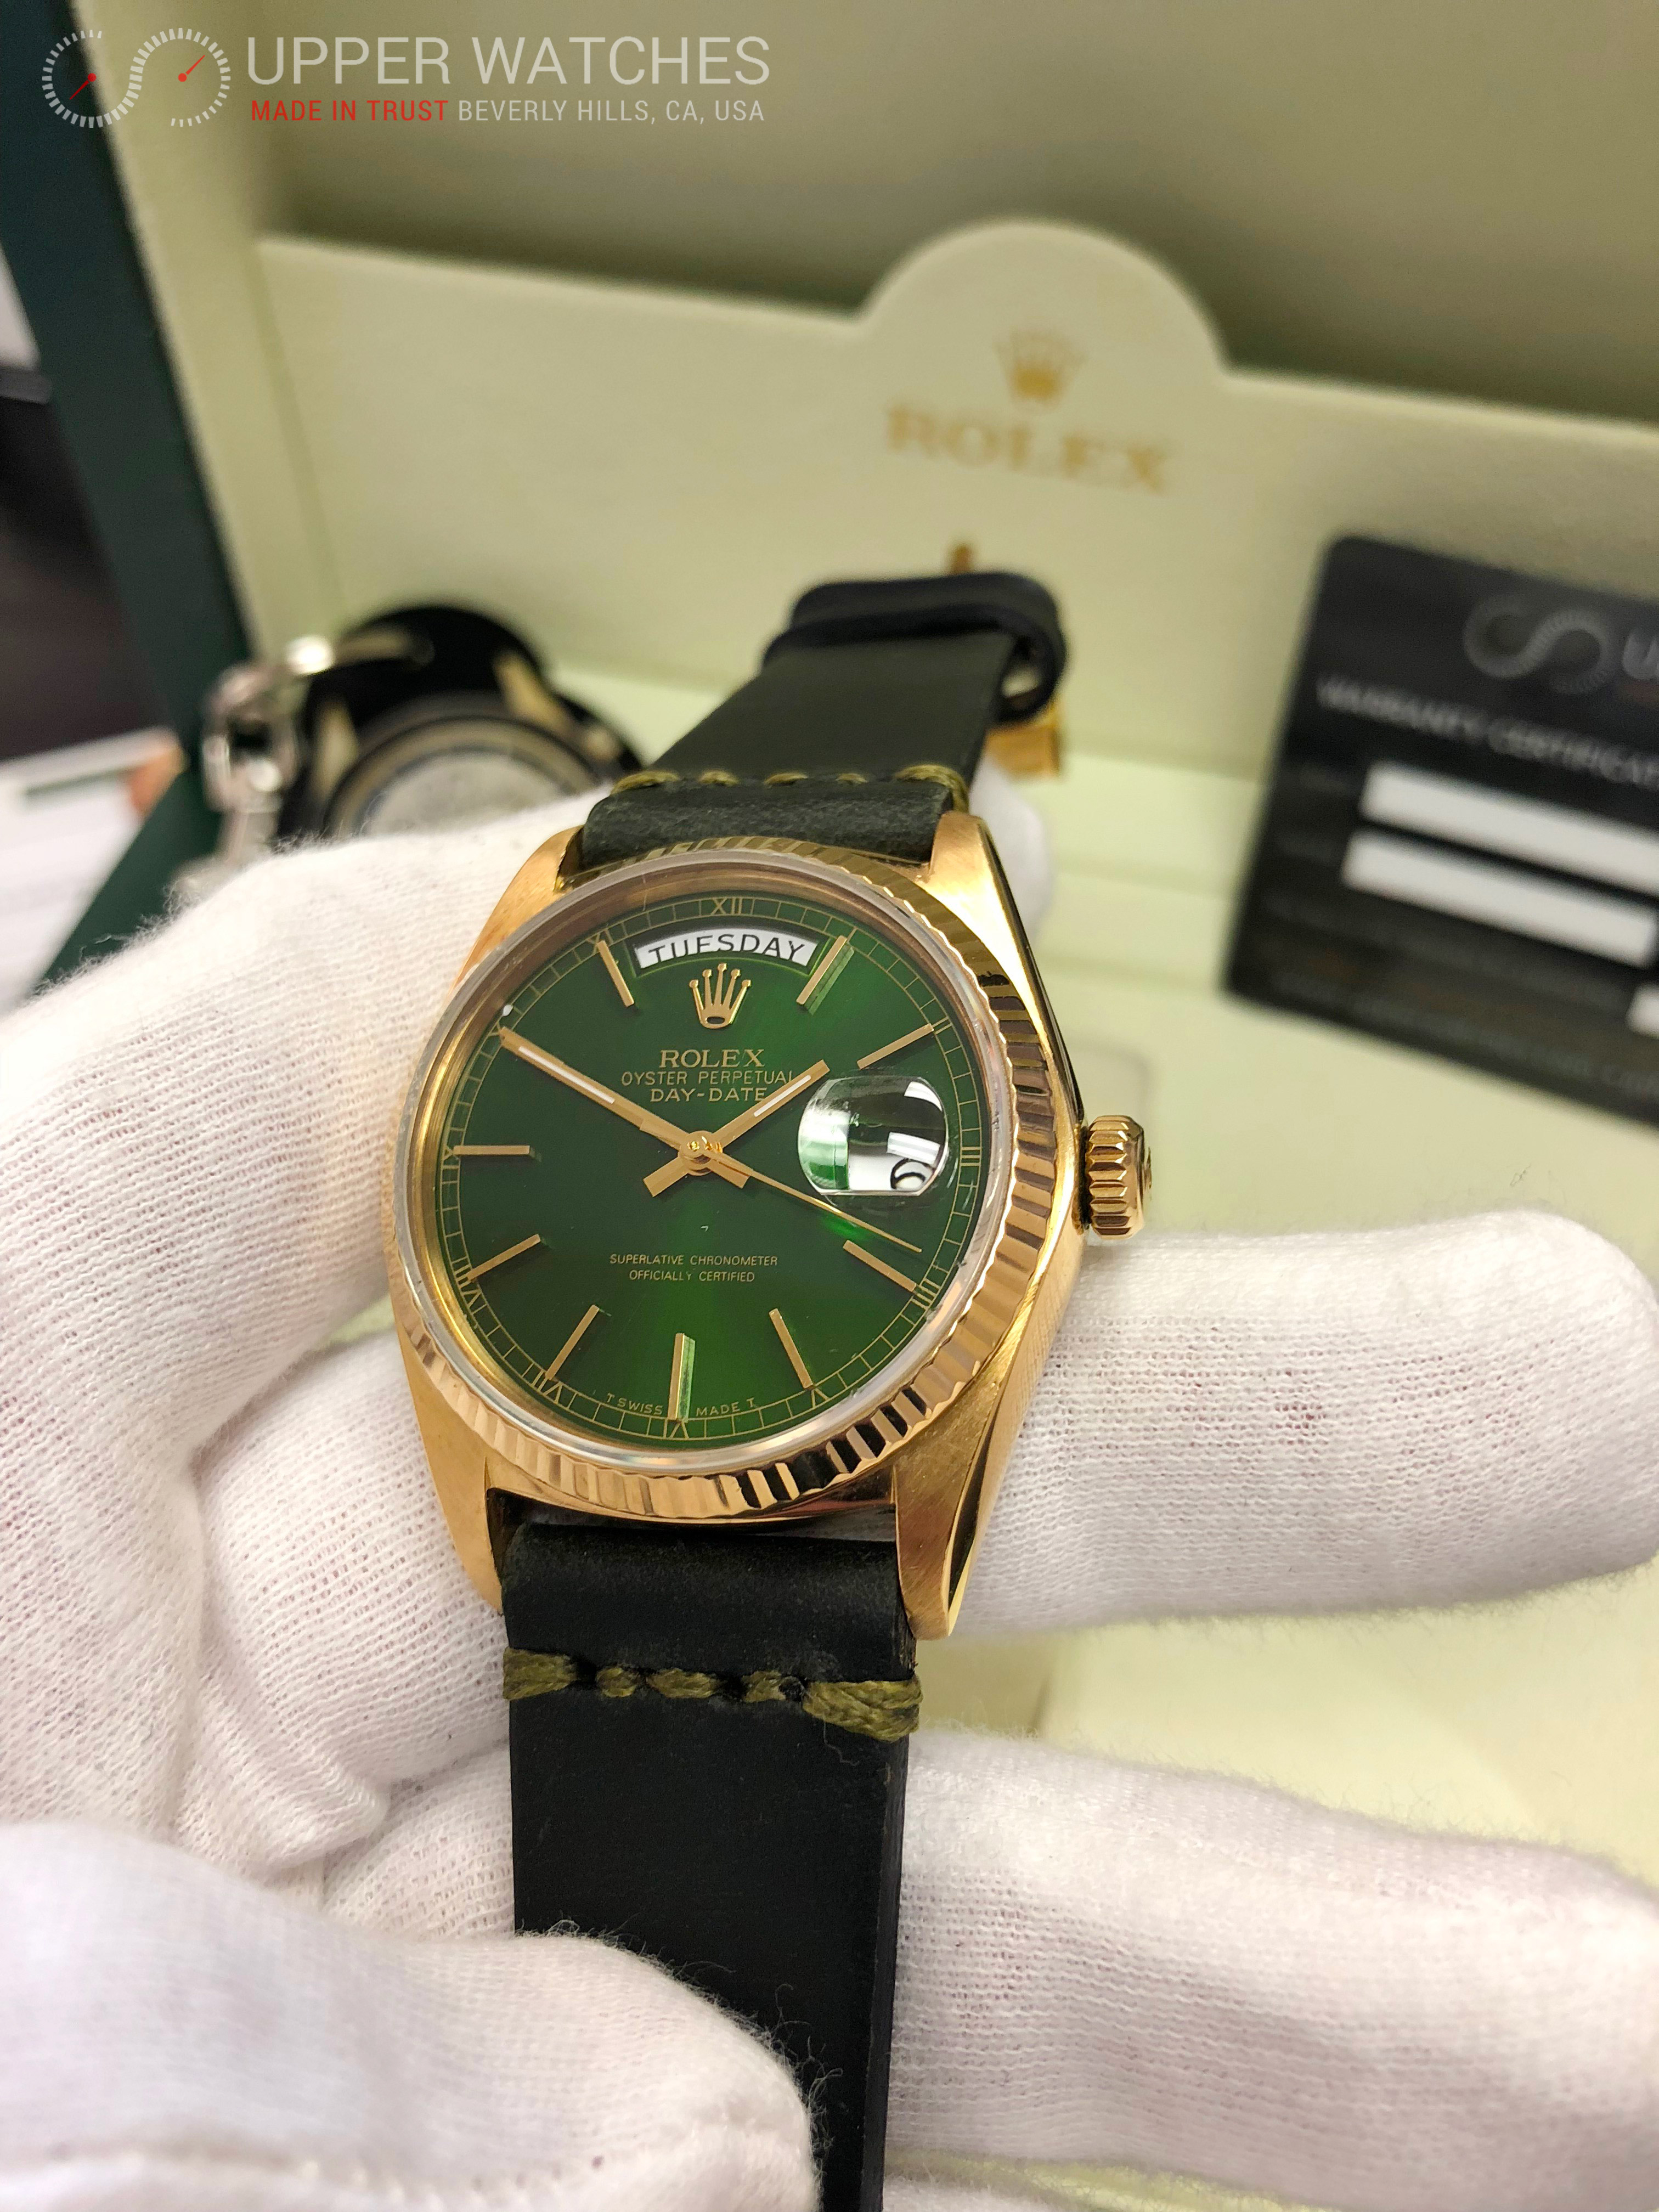 05,rolex,18038,gold,green,hulk,dial,leather,band,green